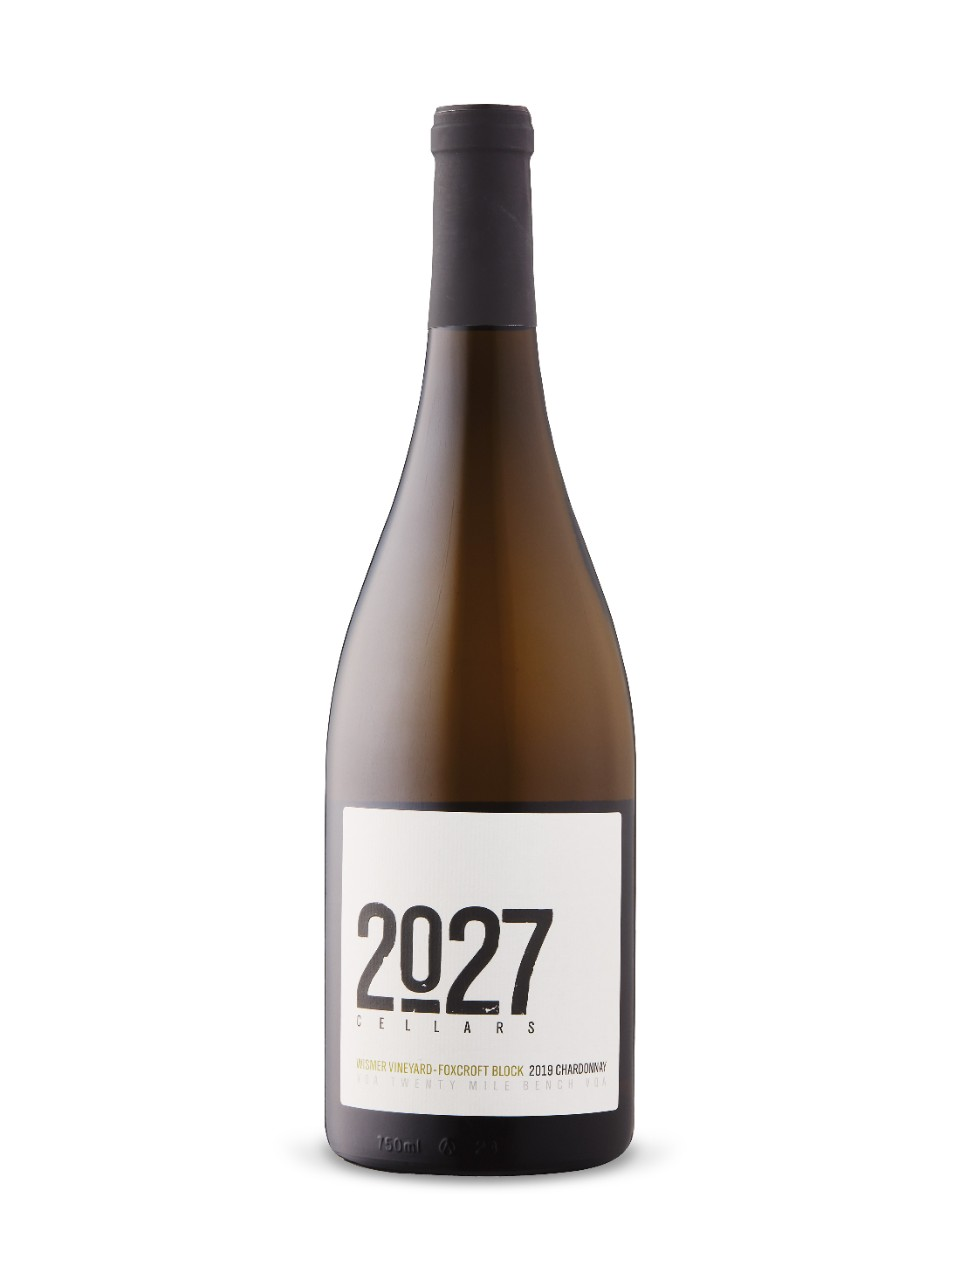 2027 Cellars Wismer Vineyard Fox Croft Block Chardonnay 2017 from LCBO